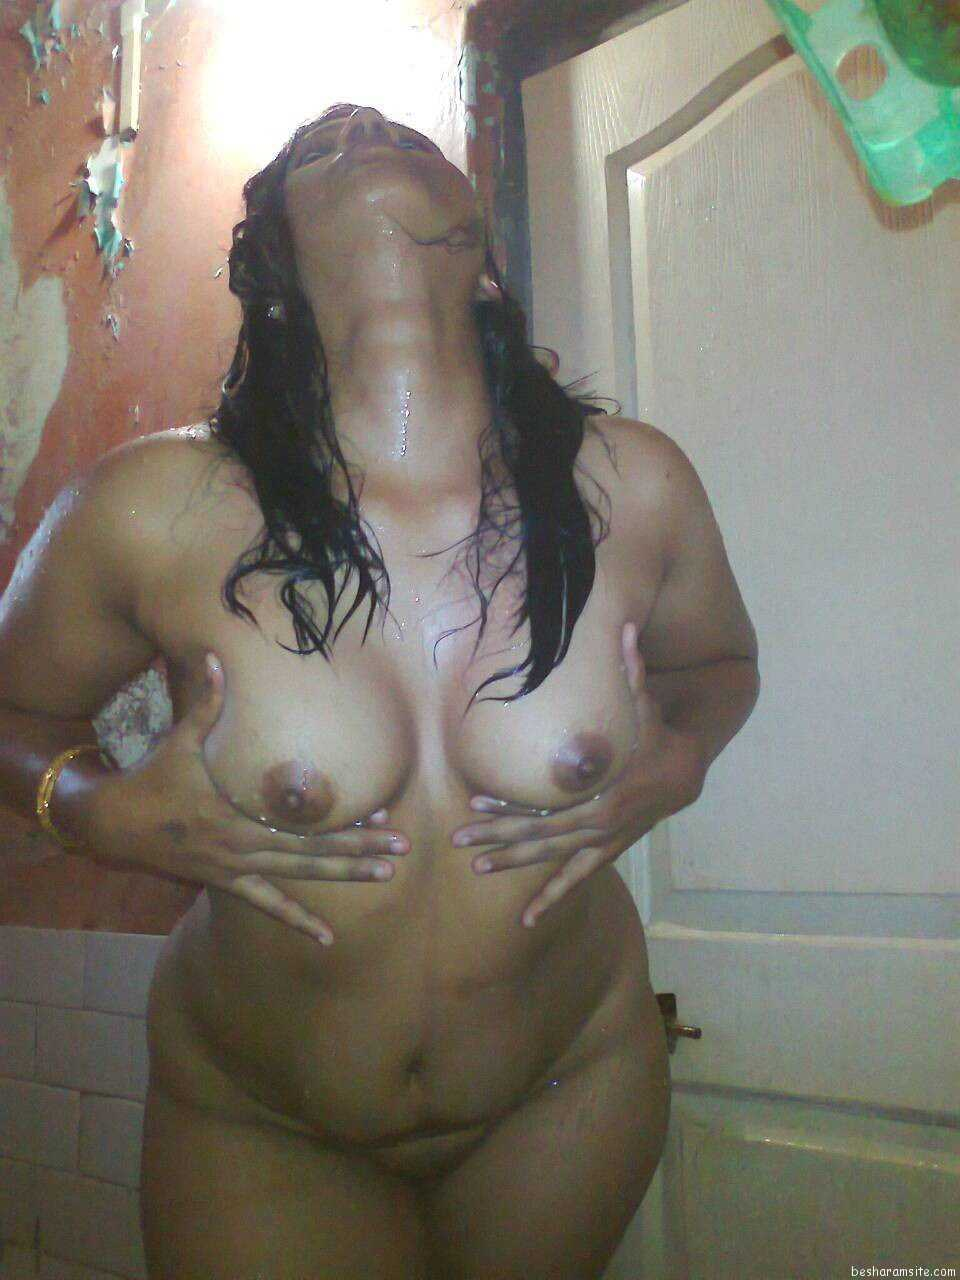 Hot indian aunty boobs shawer maid